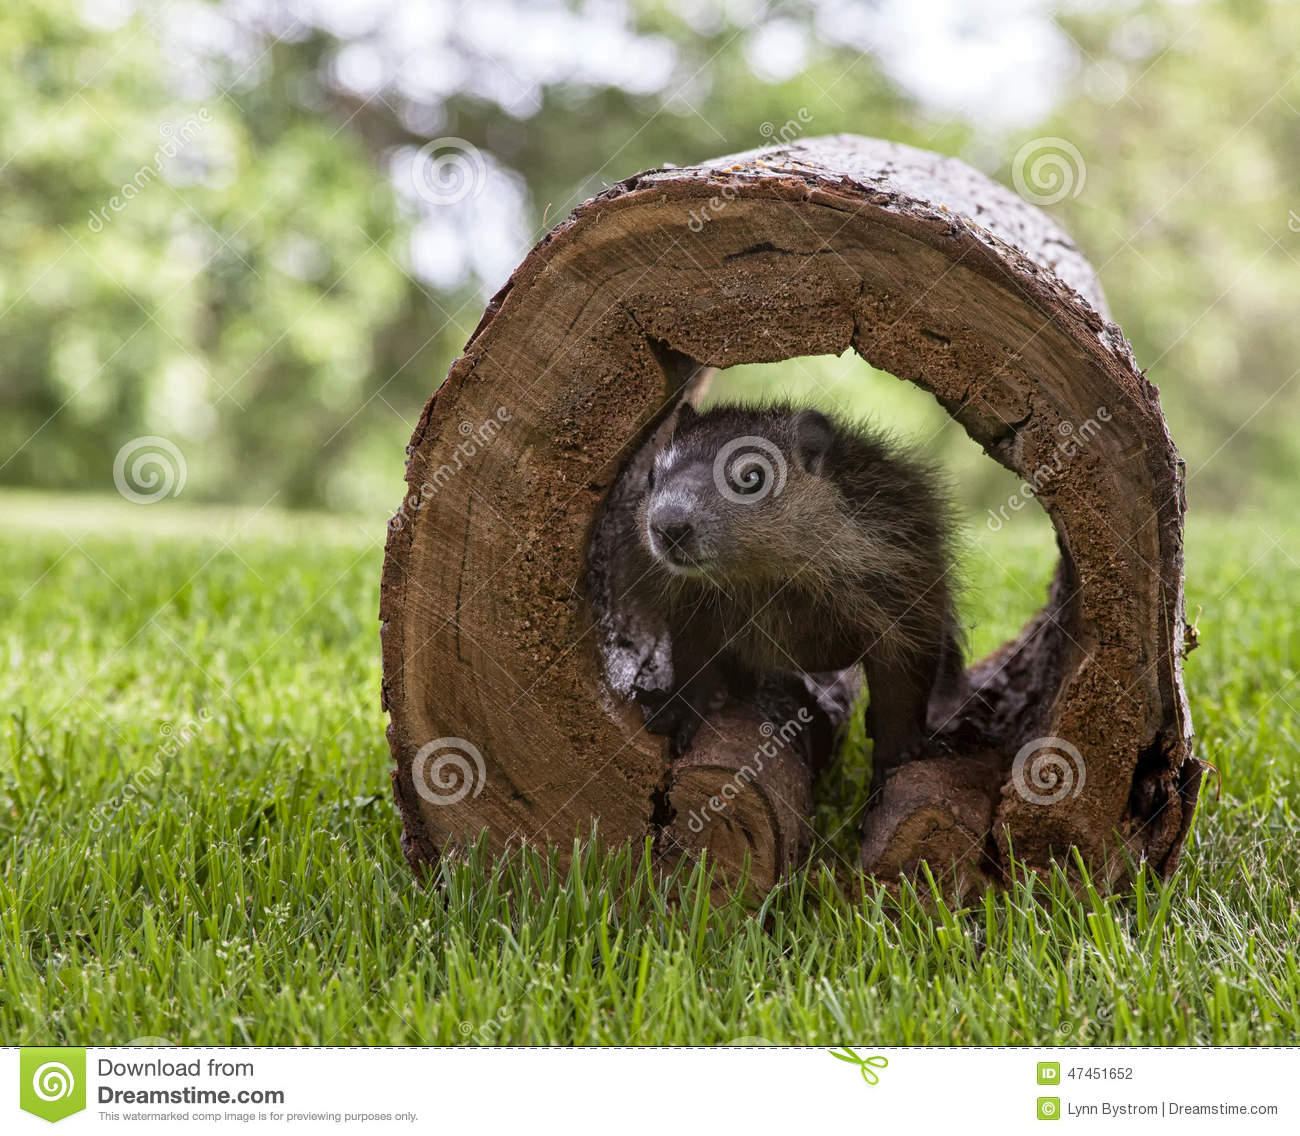 Woodchuck illustrations and clipart 316  Can Stock Photo